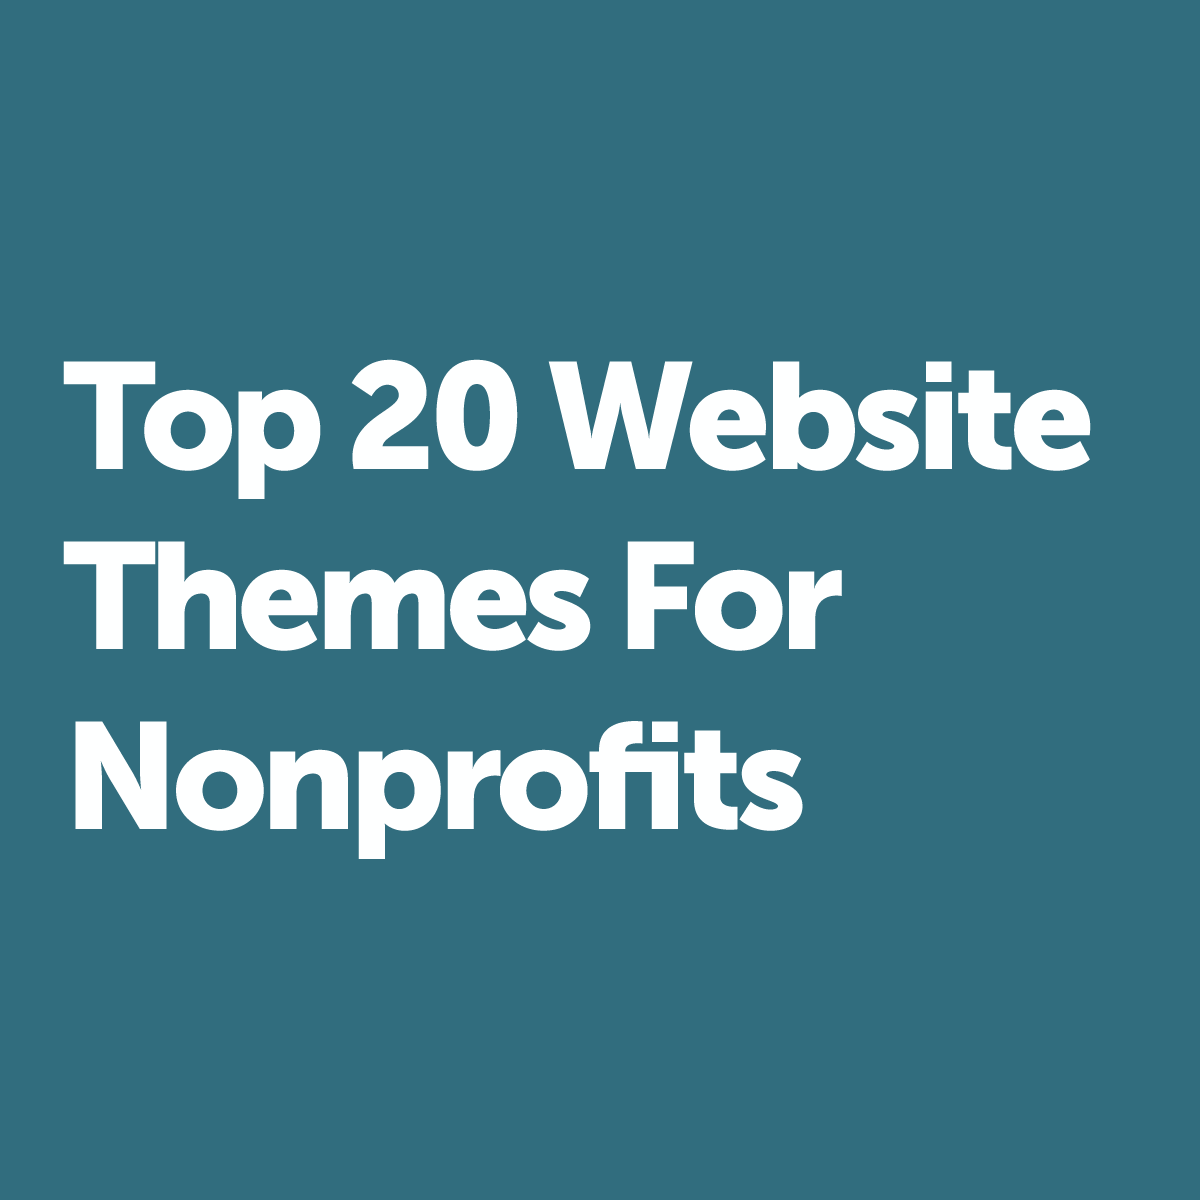 The Top 20 WordPress Themes for Nonprofits